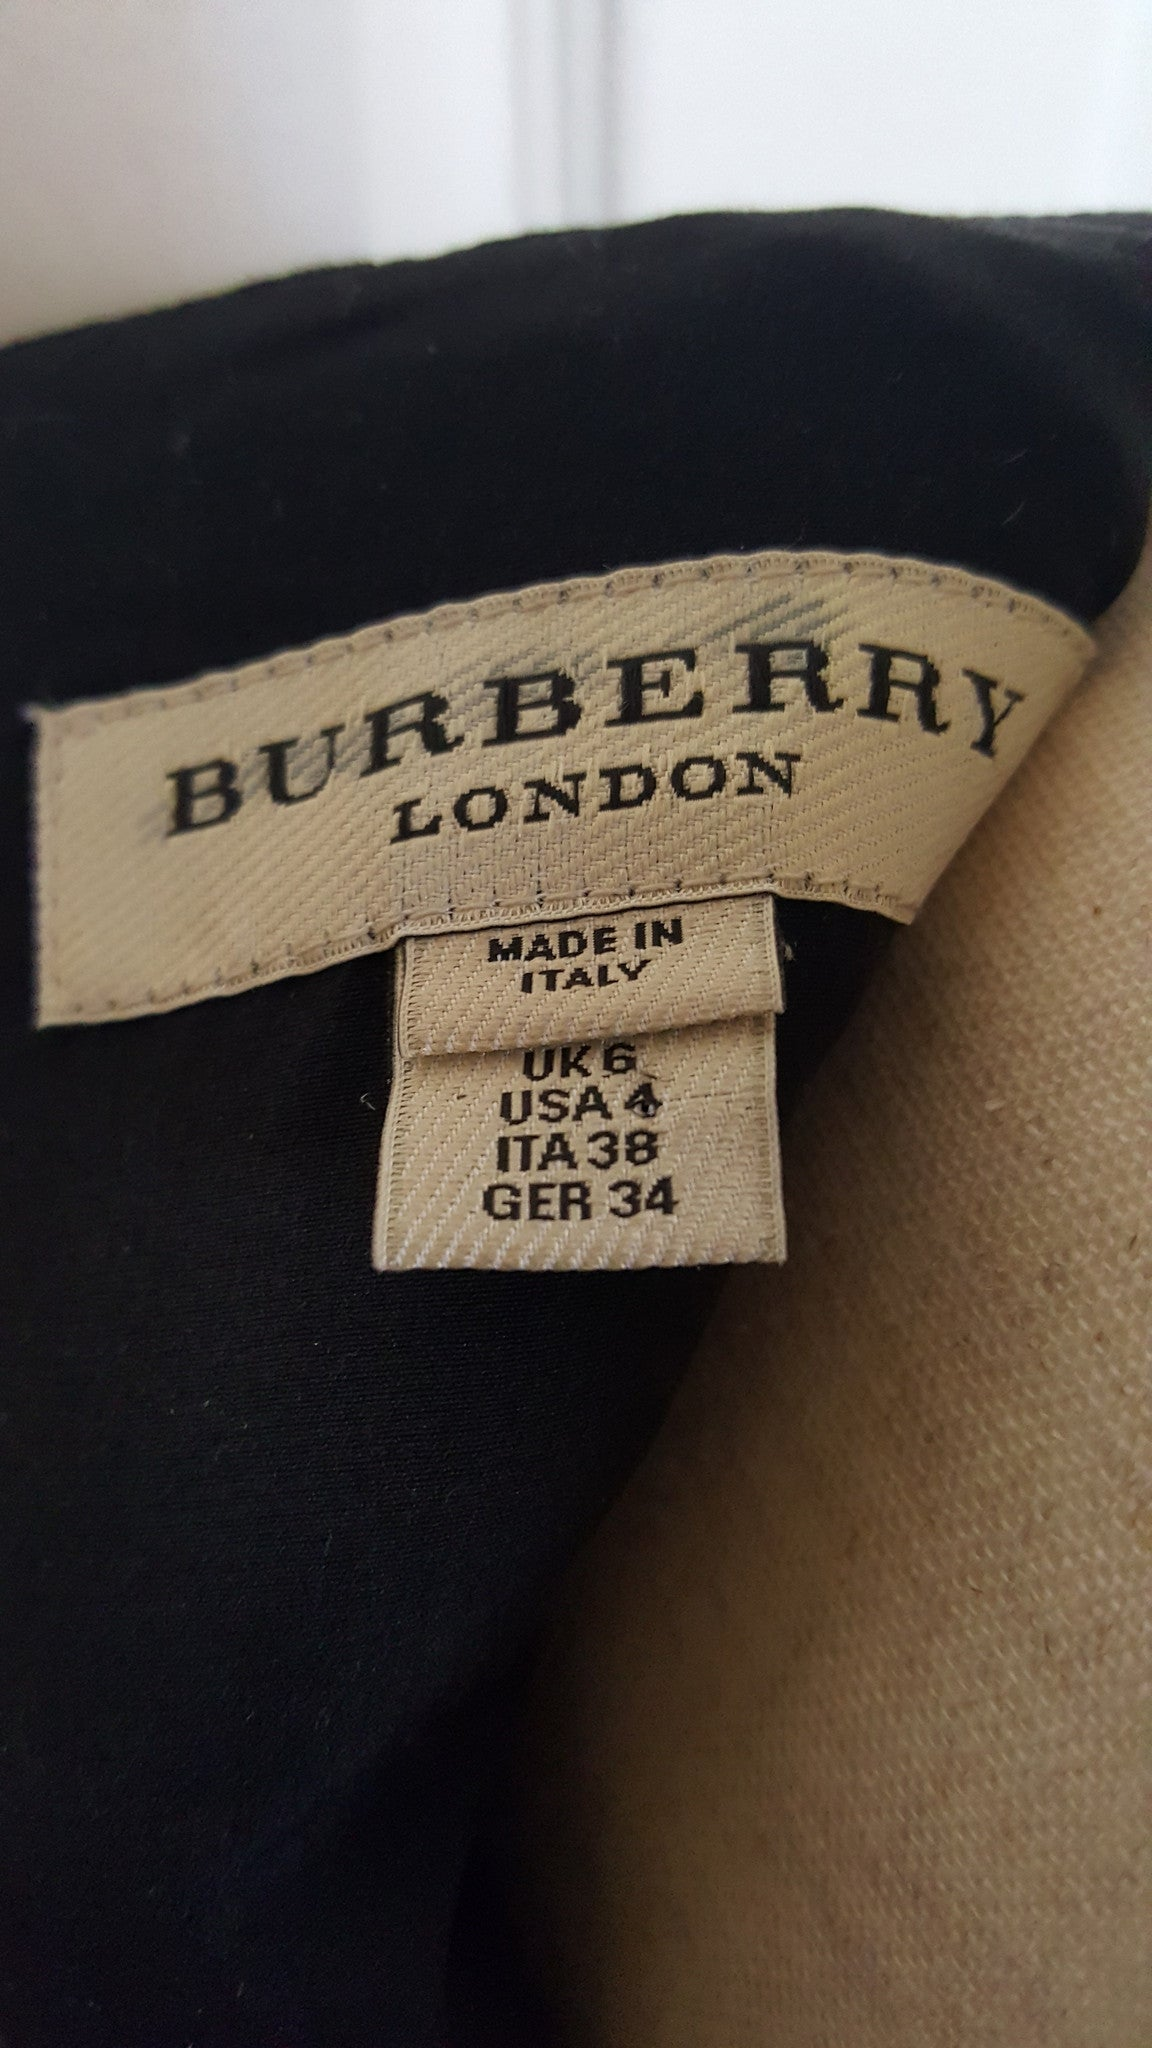 BURBERRY LONDON LEATHER TRIMMED WOOL/SILK DRESS - SIZE US 4